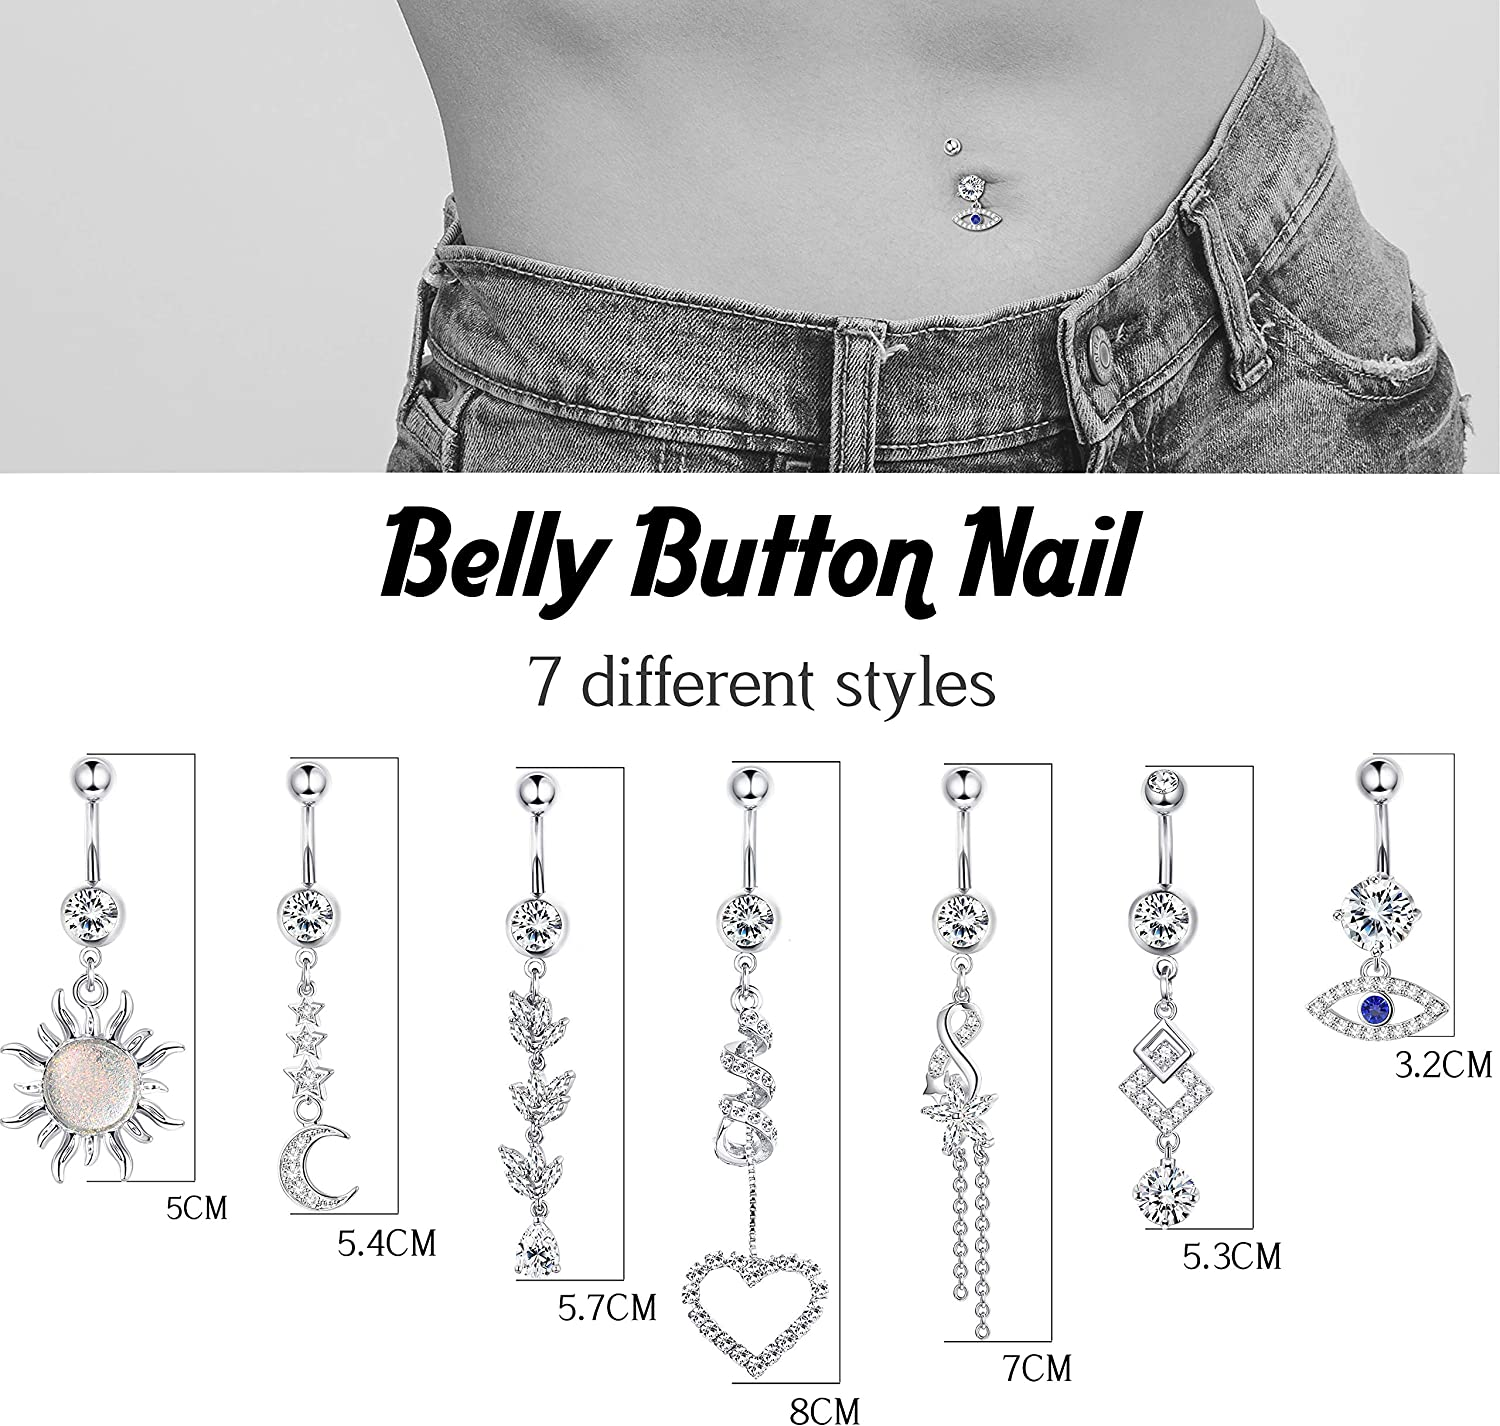 Udalyn 7Pcs 14G Dangle Belly Button Rings Surgical Steel Belly Rings for Women Navel Rings Barbell CZ Body Piercing Jewelry